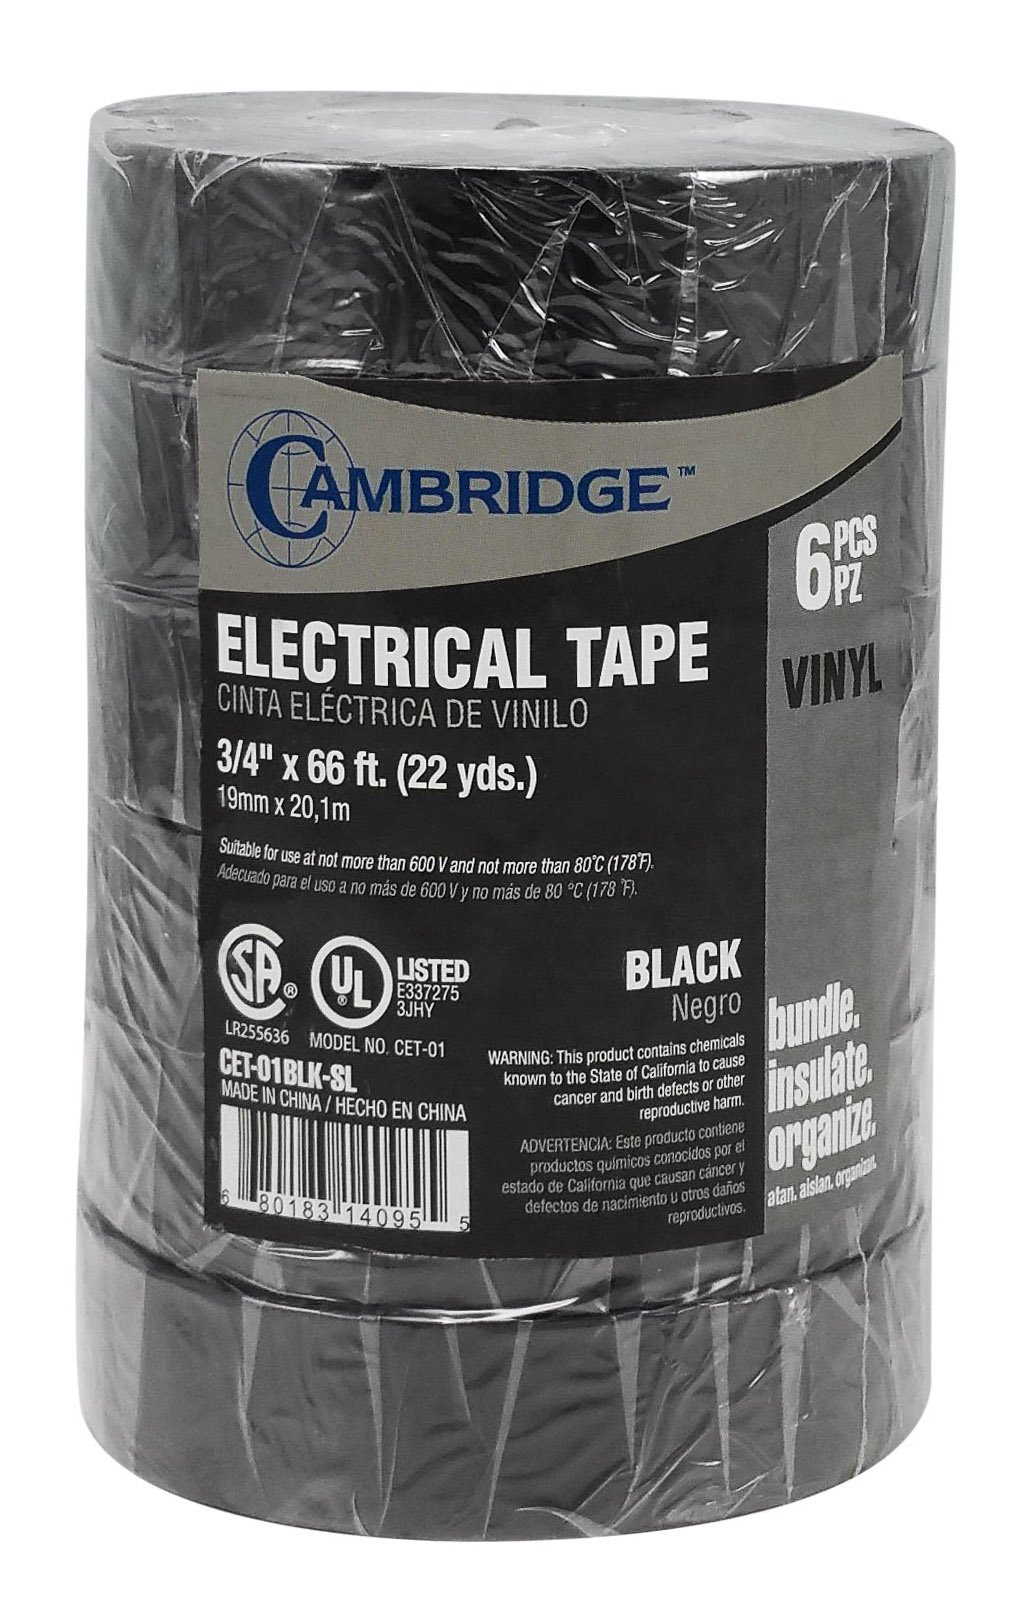 Cambridge Electrical Tape. MEGA PACK, 6 Rolls Black 3/4 Inch By 66 Feet Per Roll Plus 5 Rolls Assorted Colors 1/2 Inch By 20 Feet Per Roll, Professional Grade by Cambridge (Image #3)